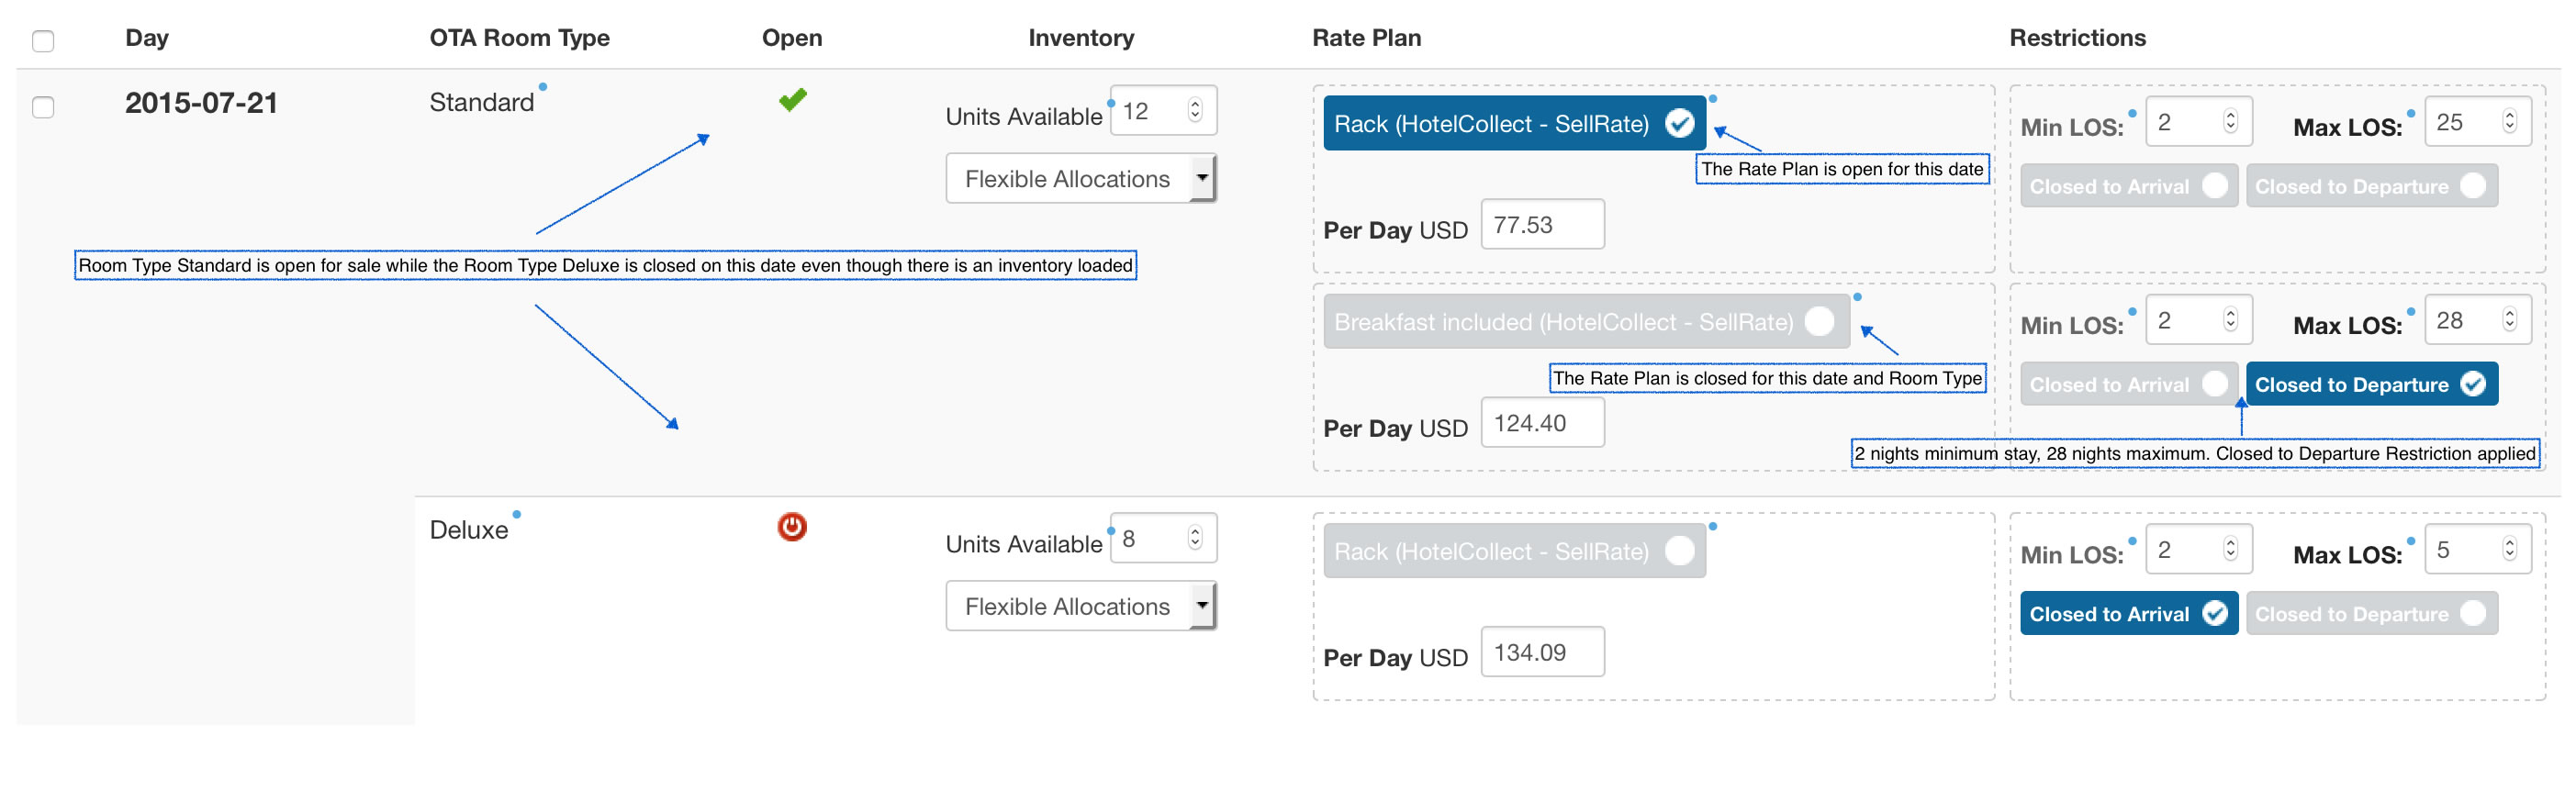 Expedia Availability, Rates and Inventory